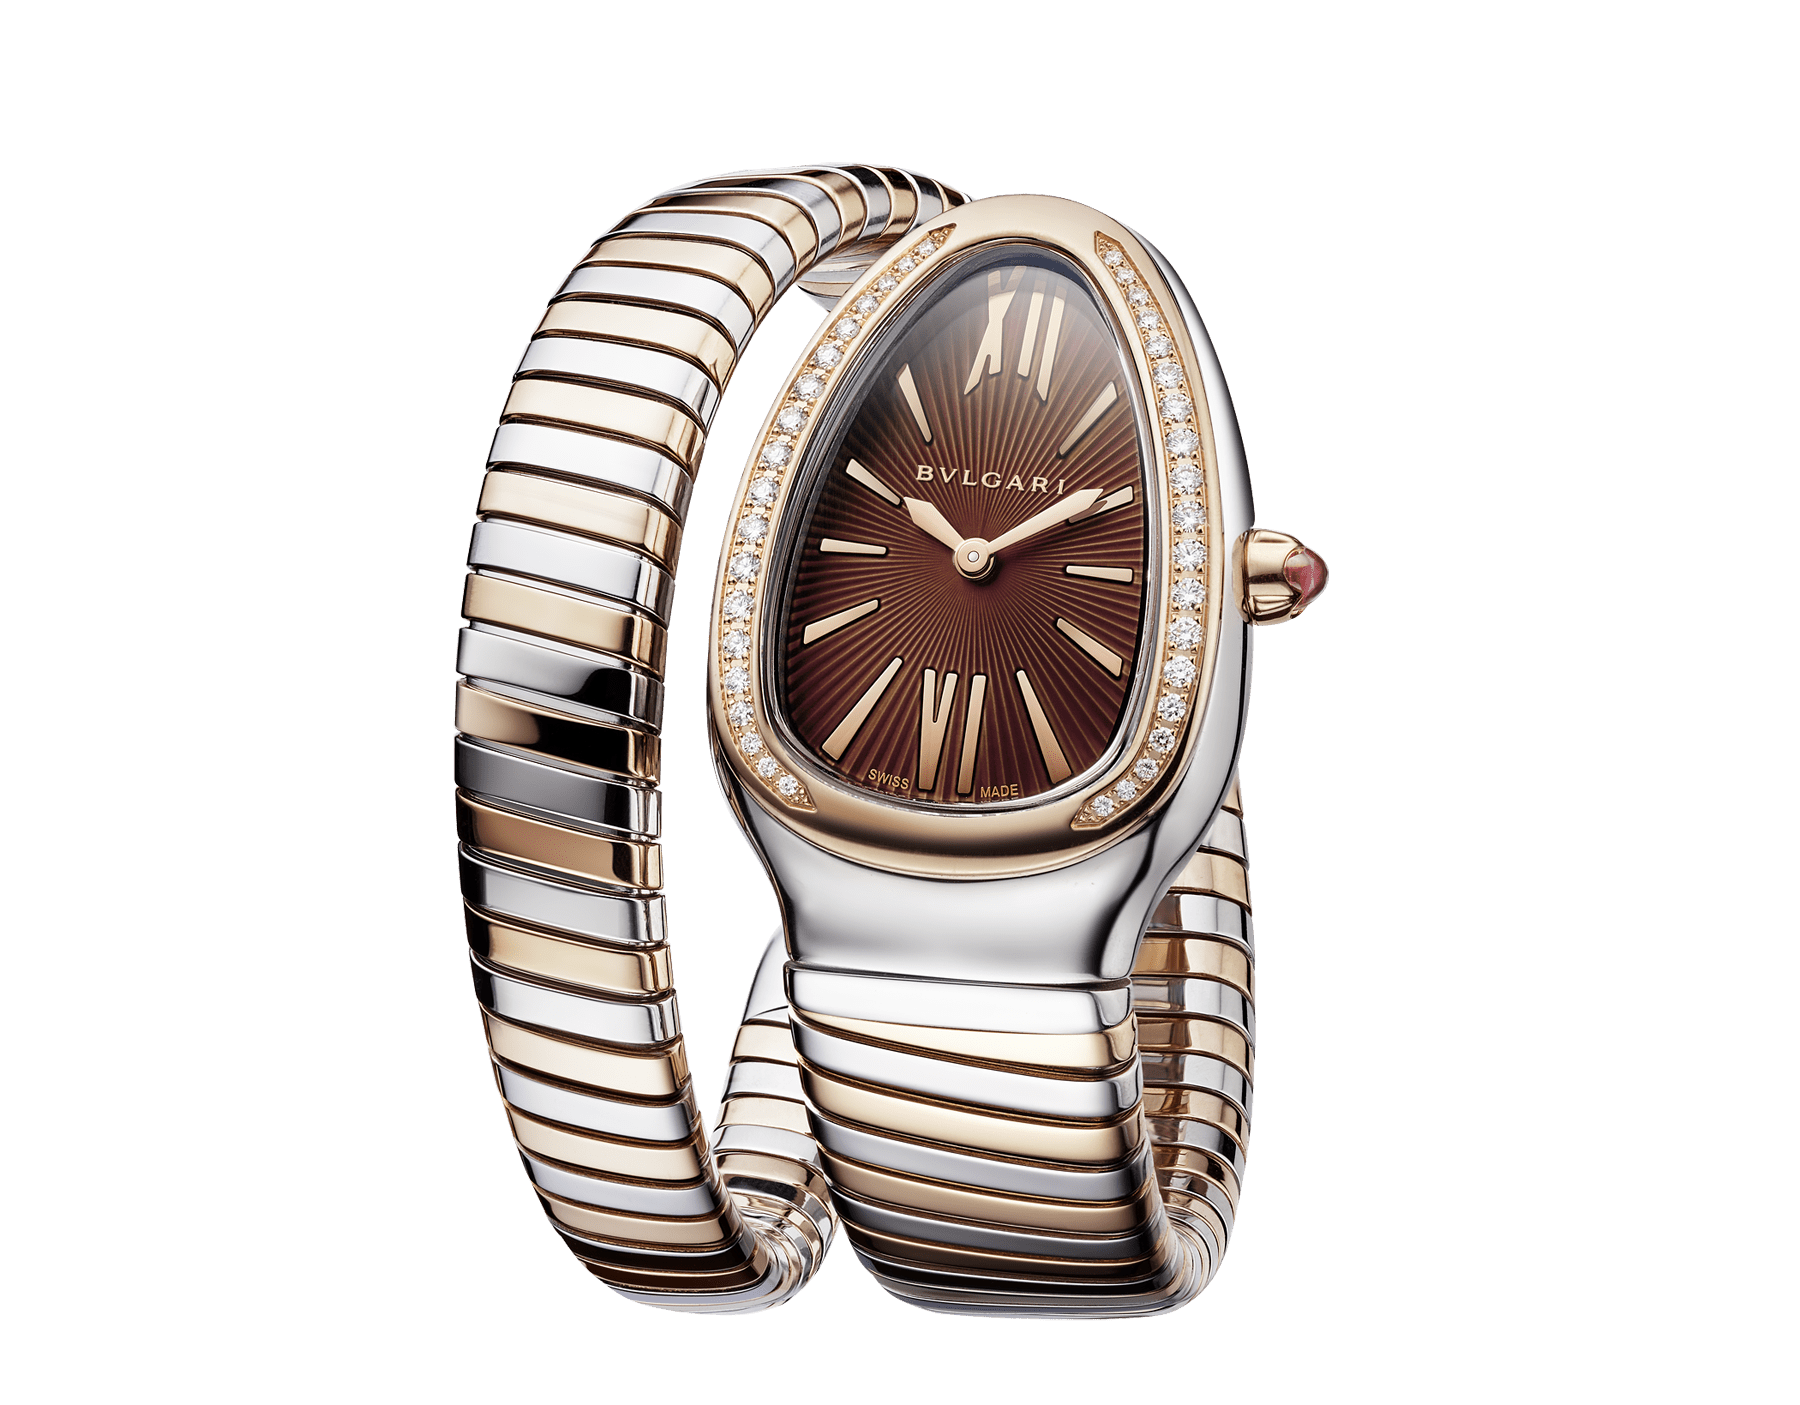 Serpenti Tubogas single spiral watch with stainless steel case, 18 kt rose gold bezel set with brilliant-cut diamonds, brown dial with guilloché soleil treatment, stainless steel and 18 kt rose gold bracelet 103071 image 2